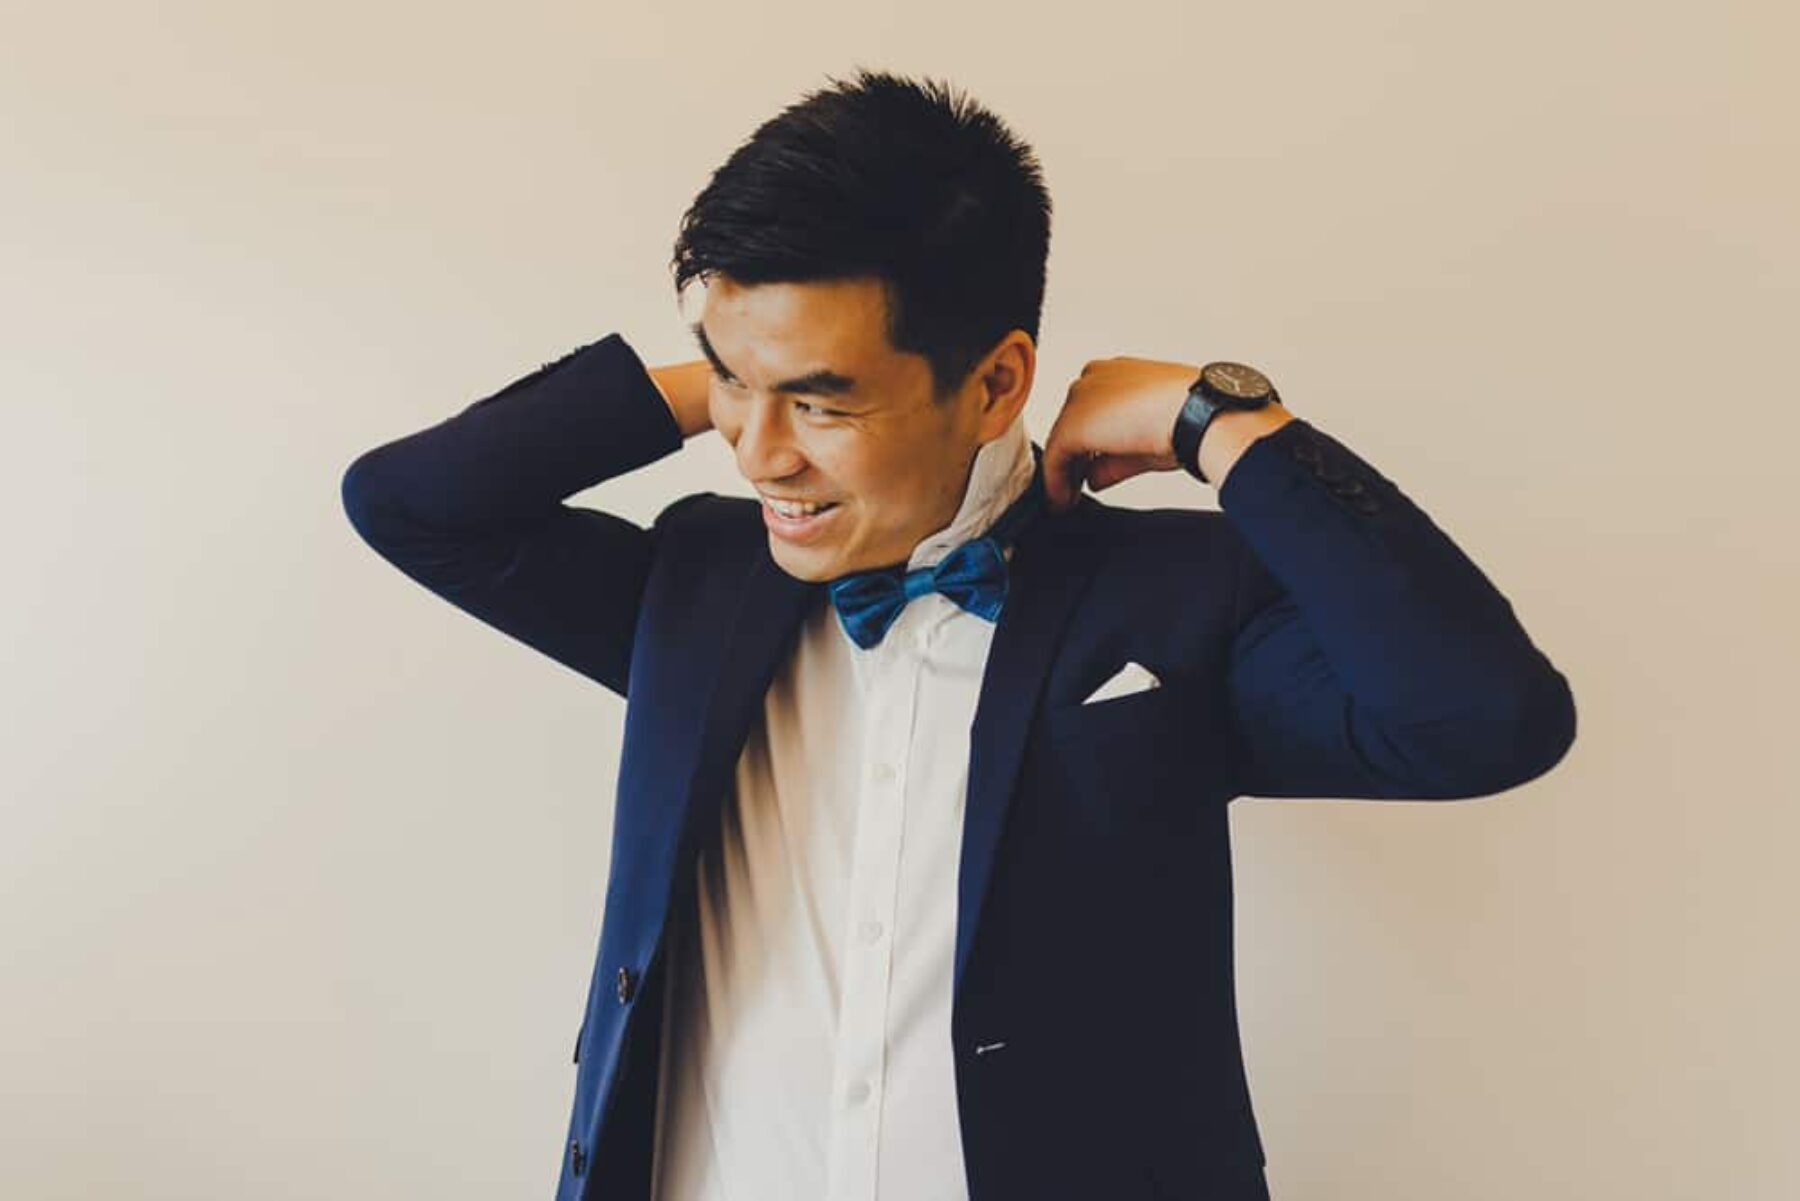 groom wearing royal blue suit and bow tie